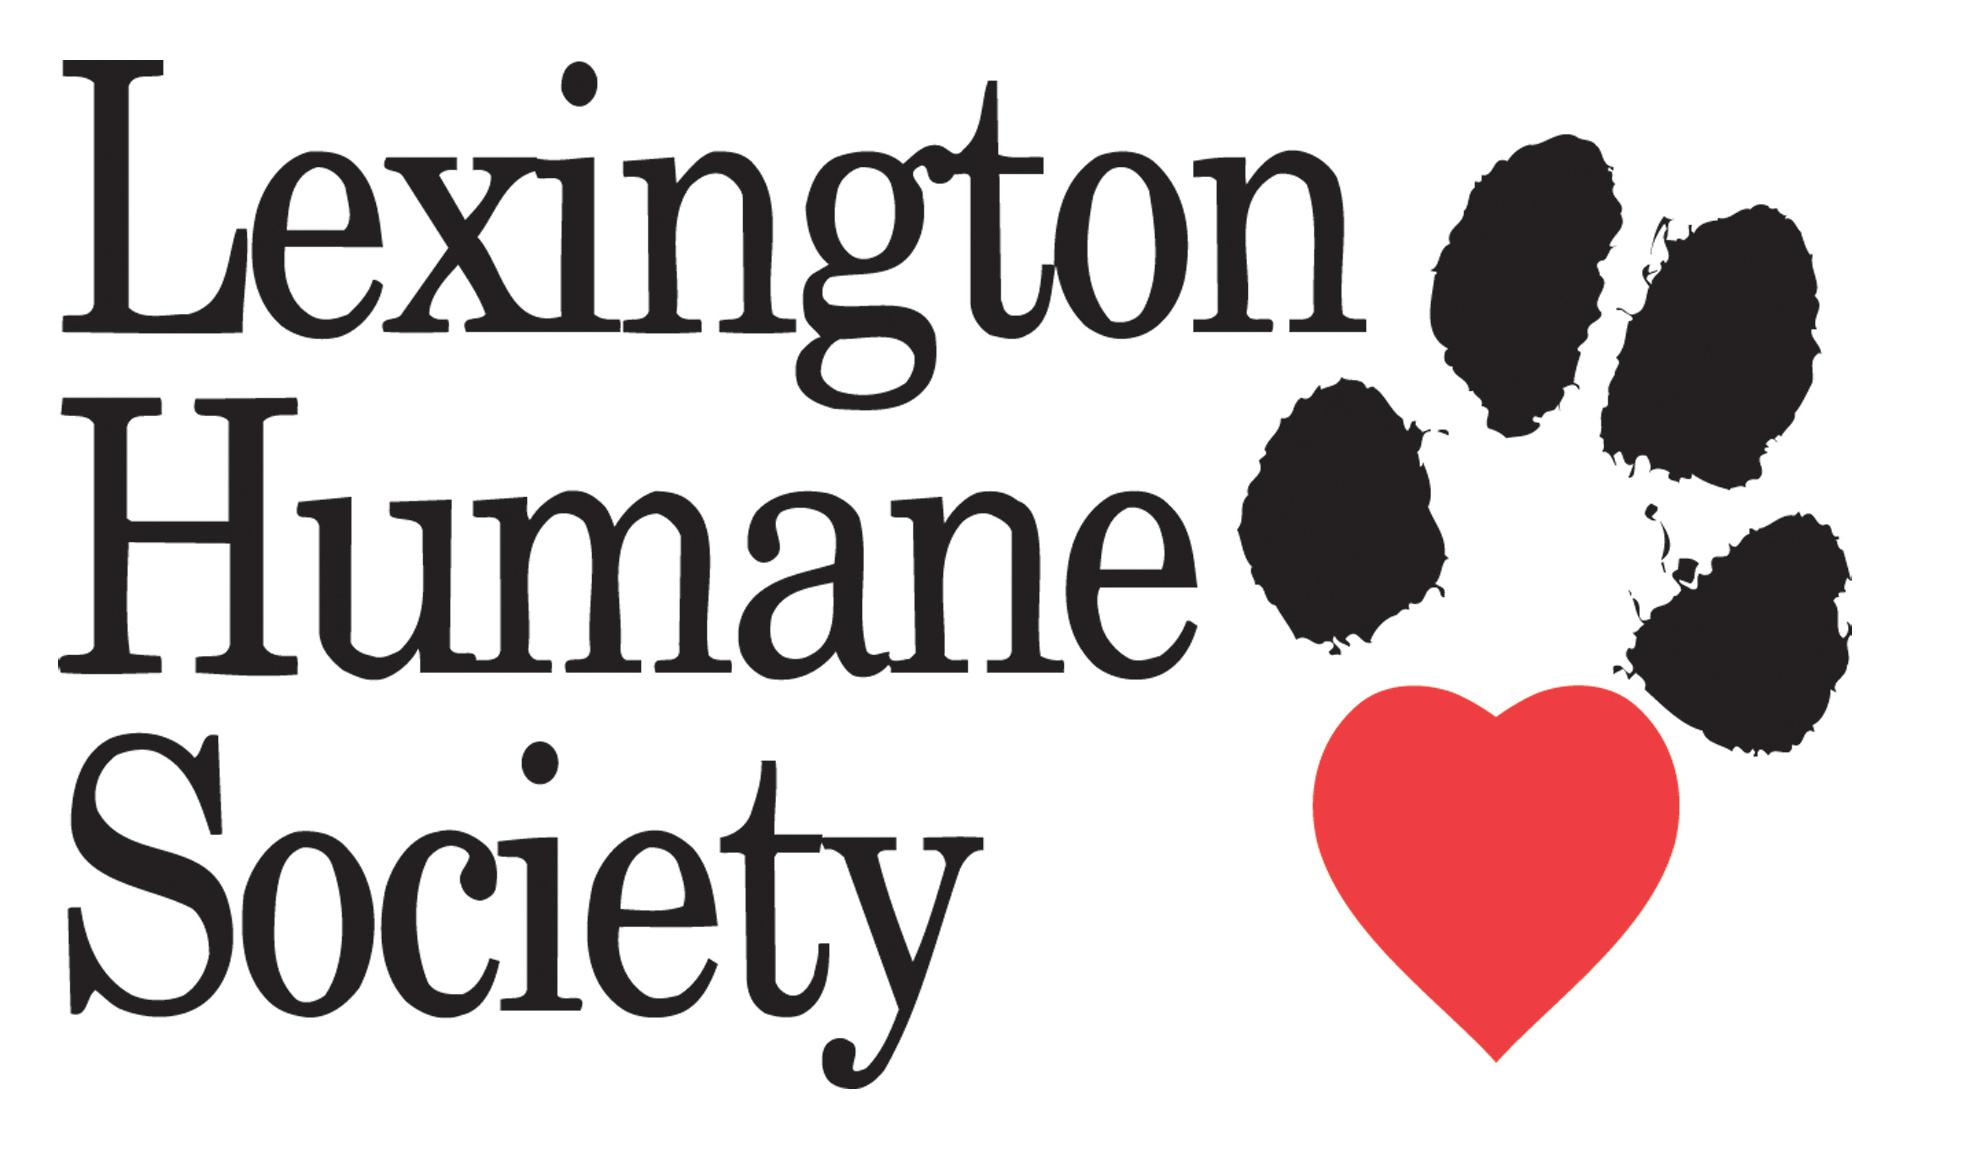 Lexington Humane Society